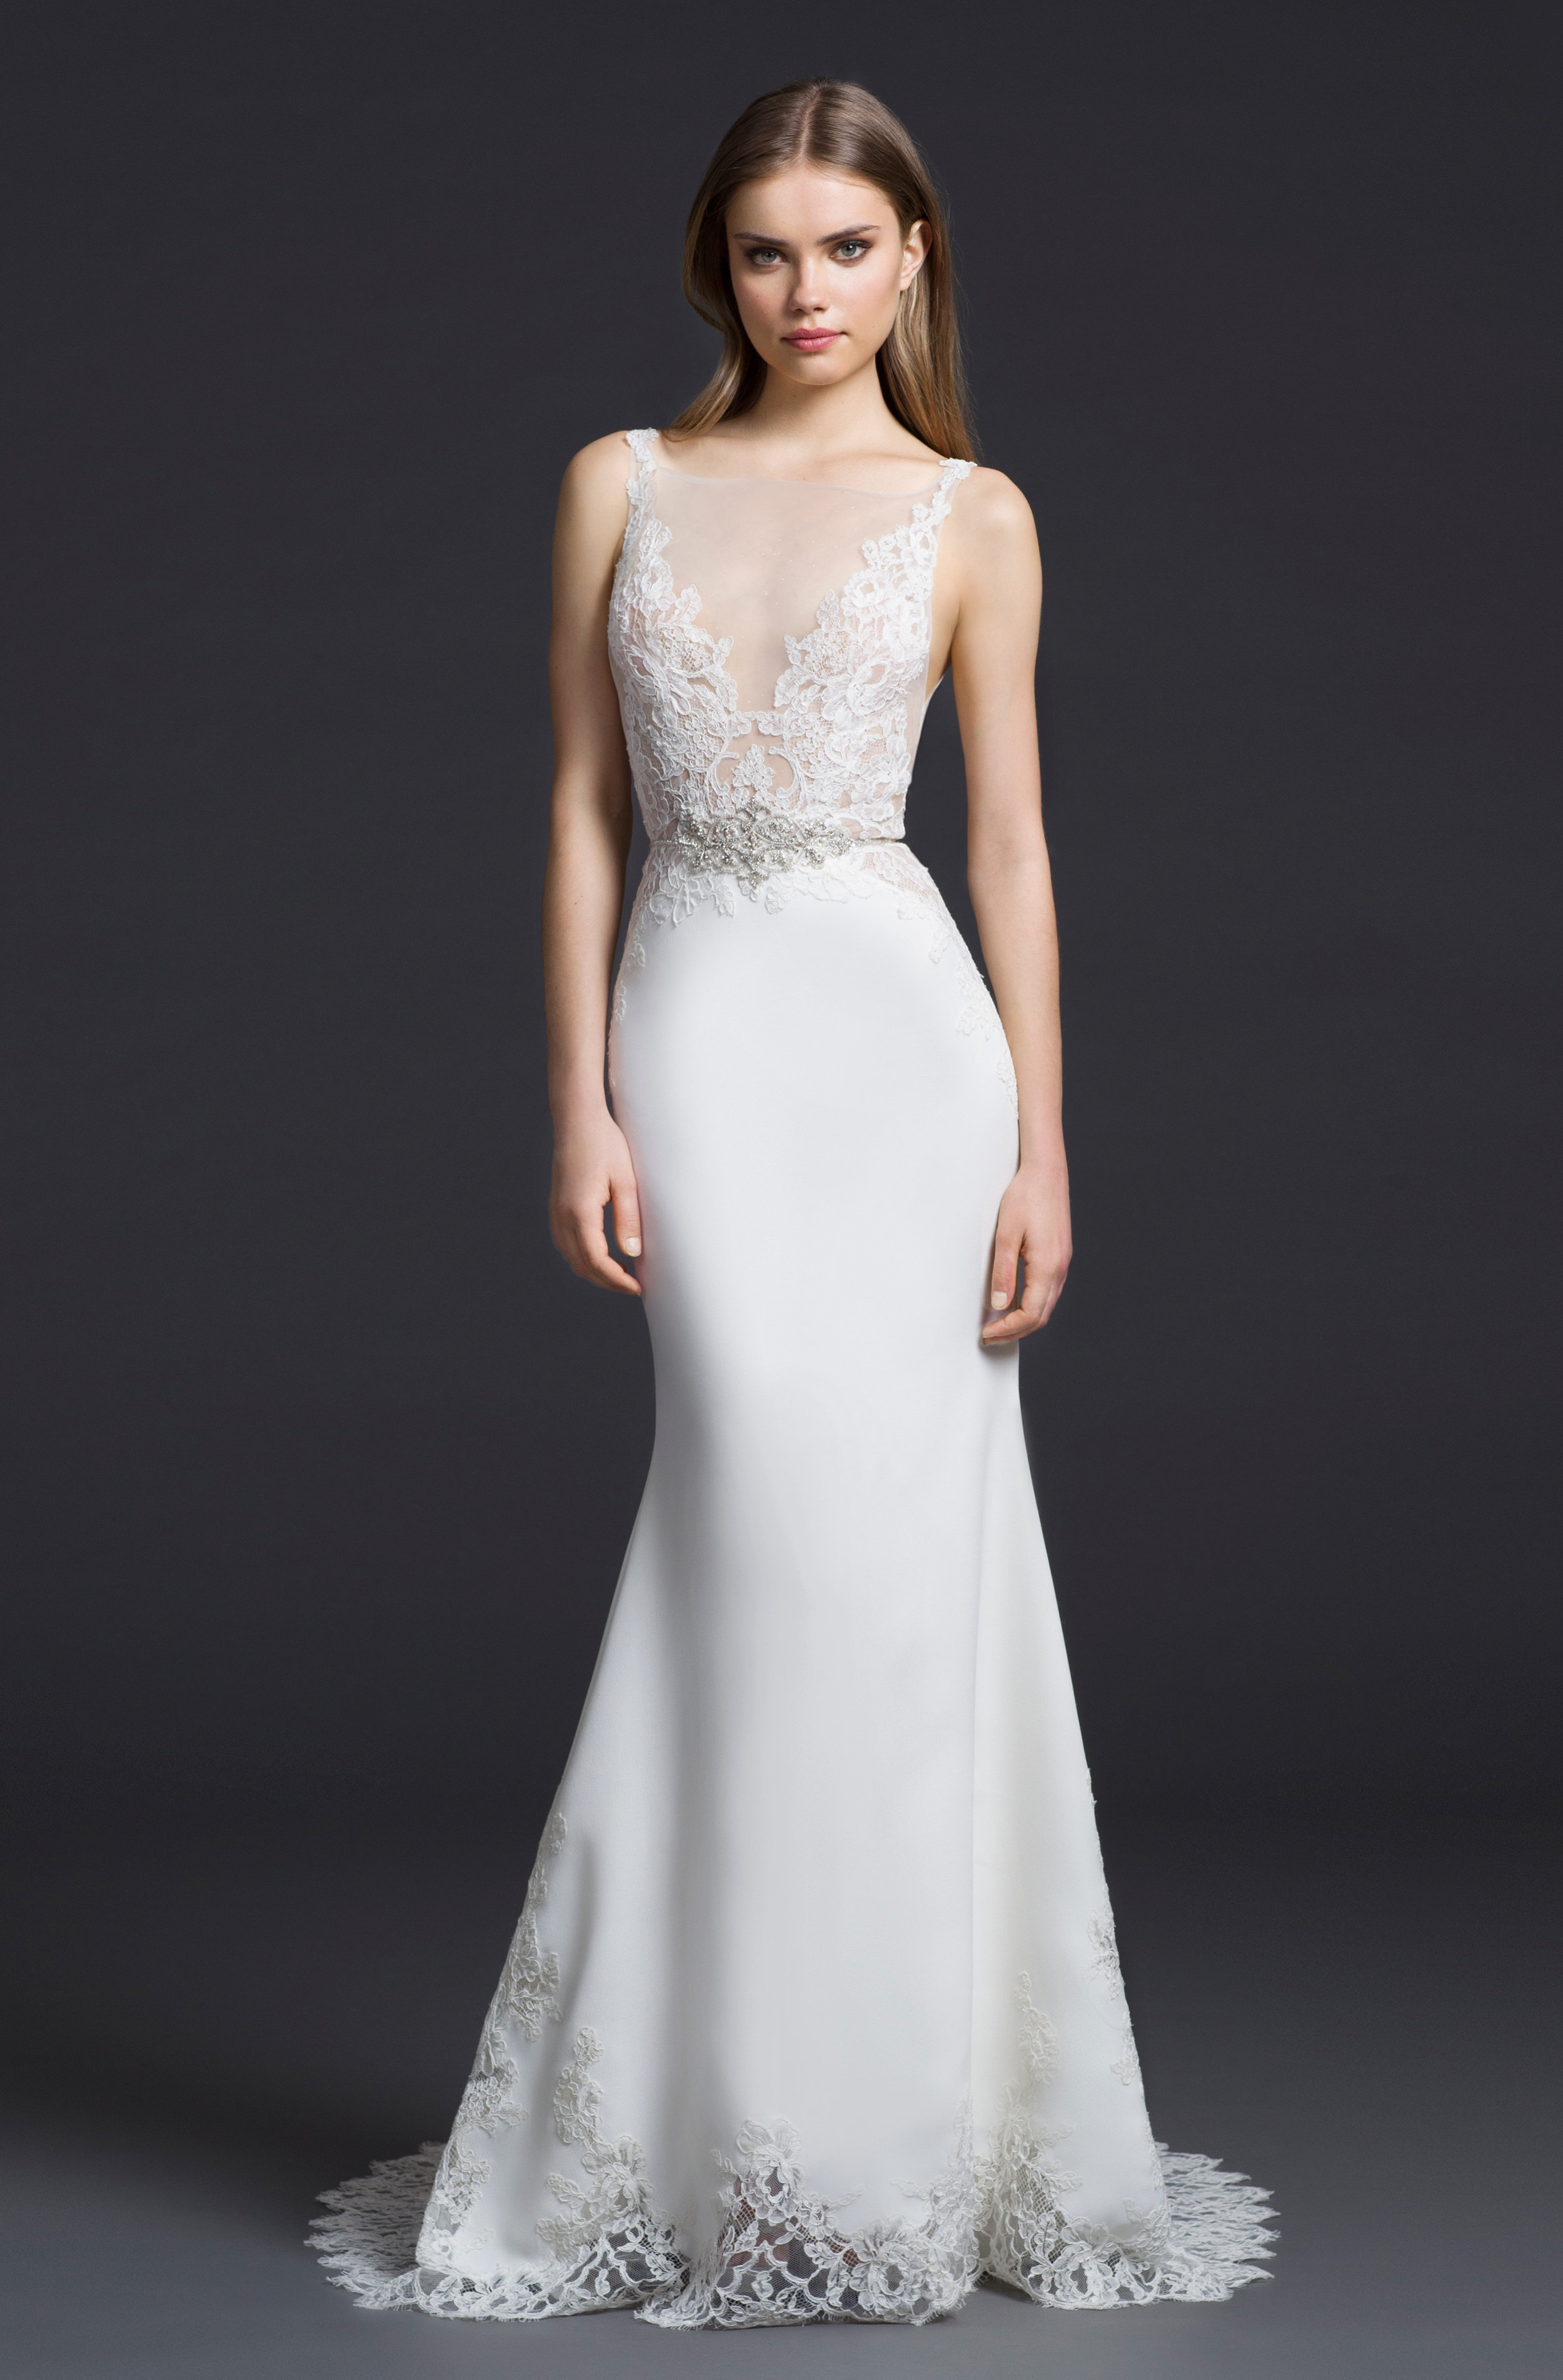 Bridal Gowns and Wedding Dresses by JLM Couture - Style 3655